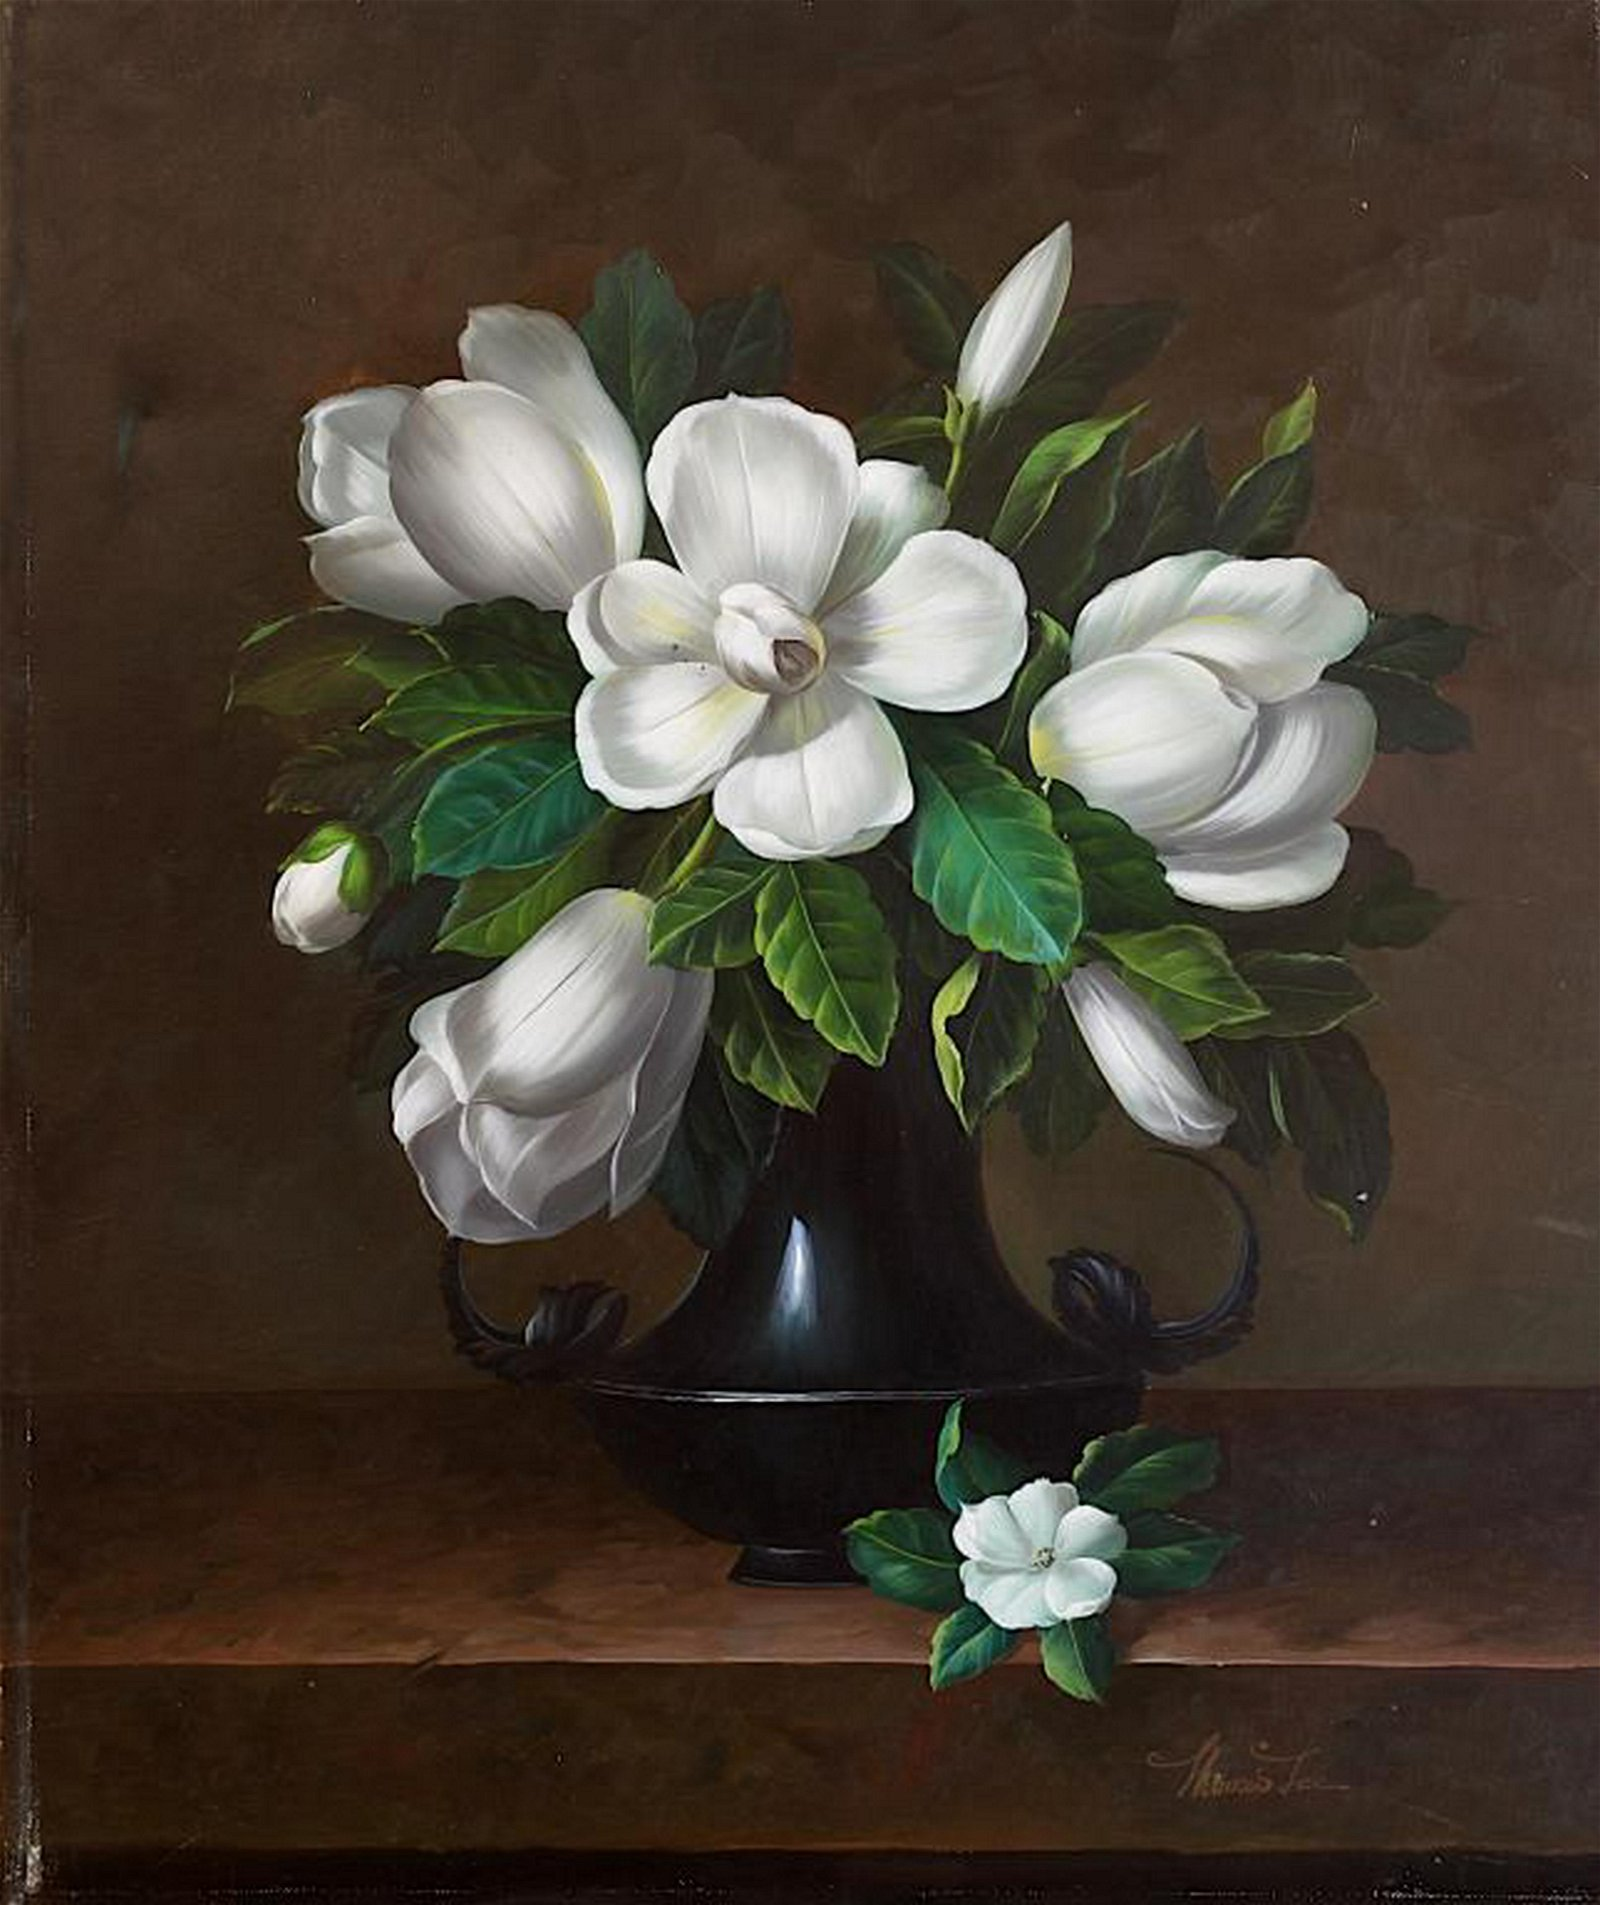 LiveAuctioneers & OIL PAINTING ON CANVAS OF WHITE FLOWERS IN VASE